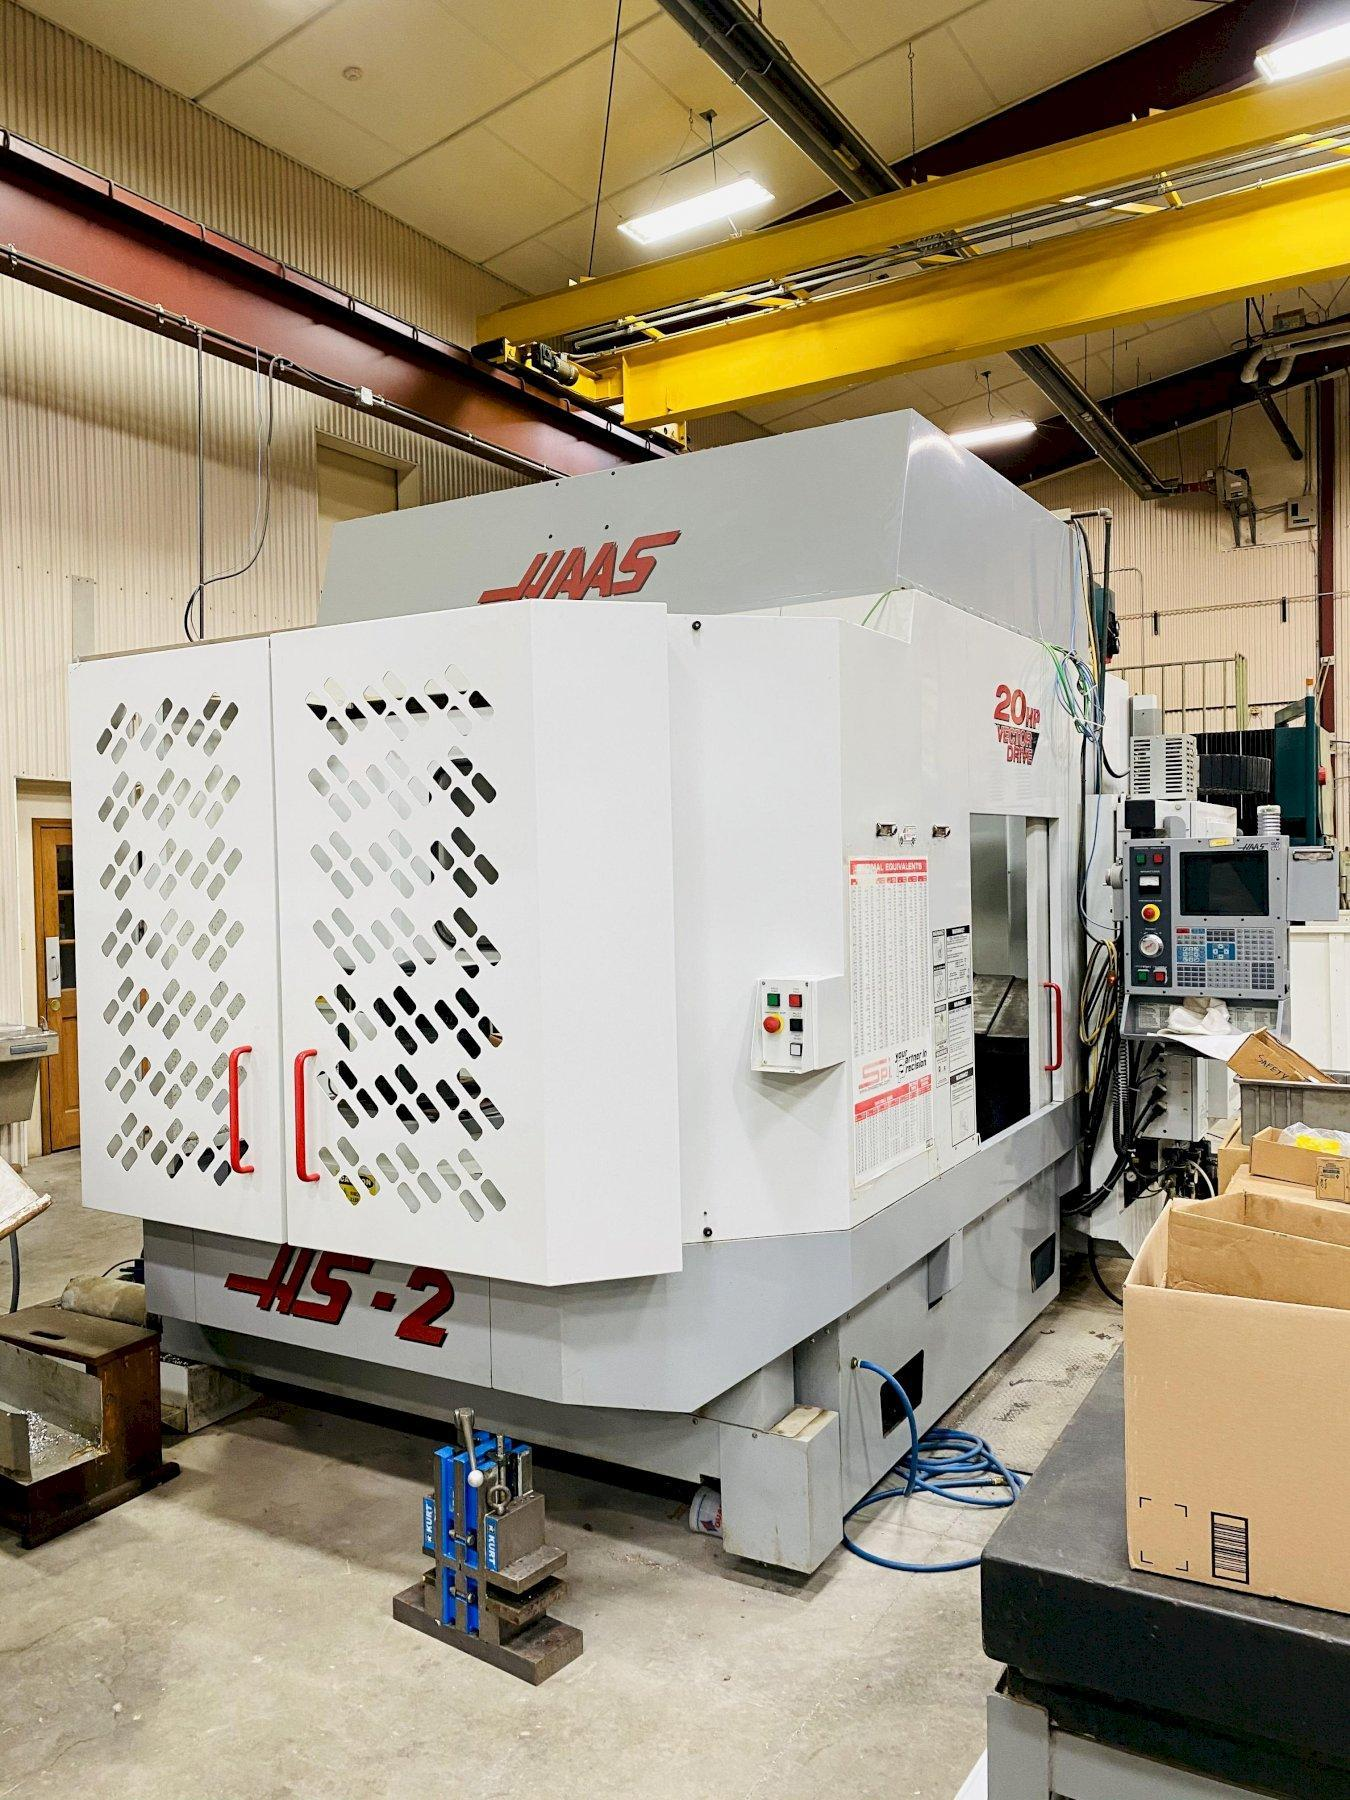 HAAS HS 2RP HORIZONTAL MACHINING CENTER. STOCK # 0104721